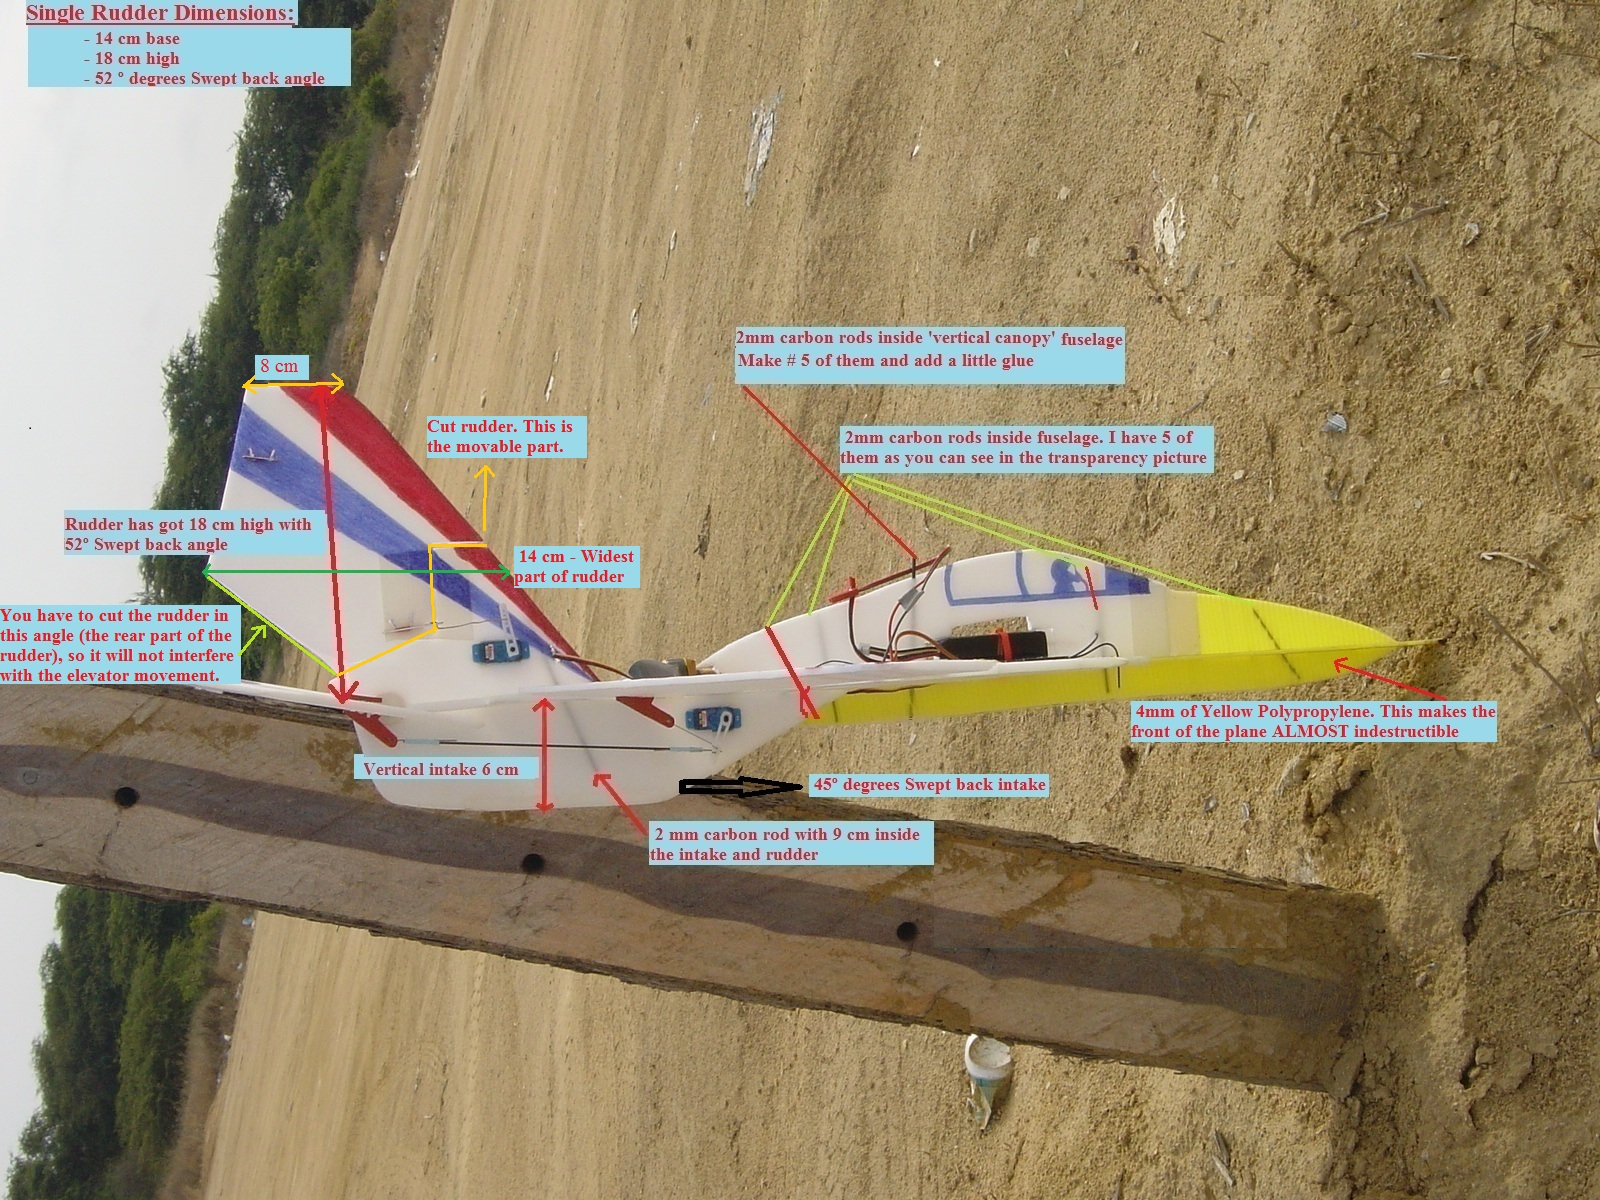 Click image for larger version  Name:SU 47 V2 JB Side View.jpg Views:37 Size:800.3 KB ID:1959028